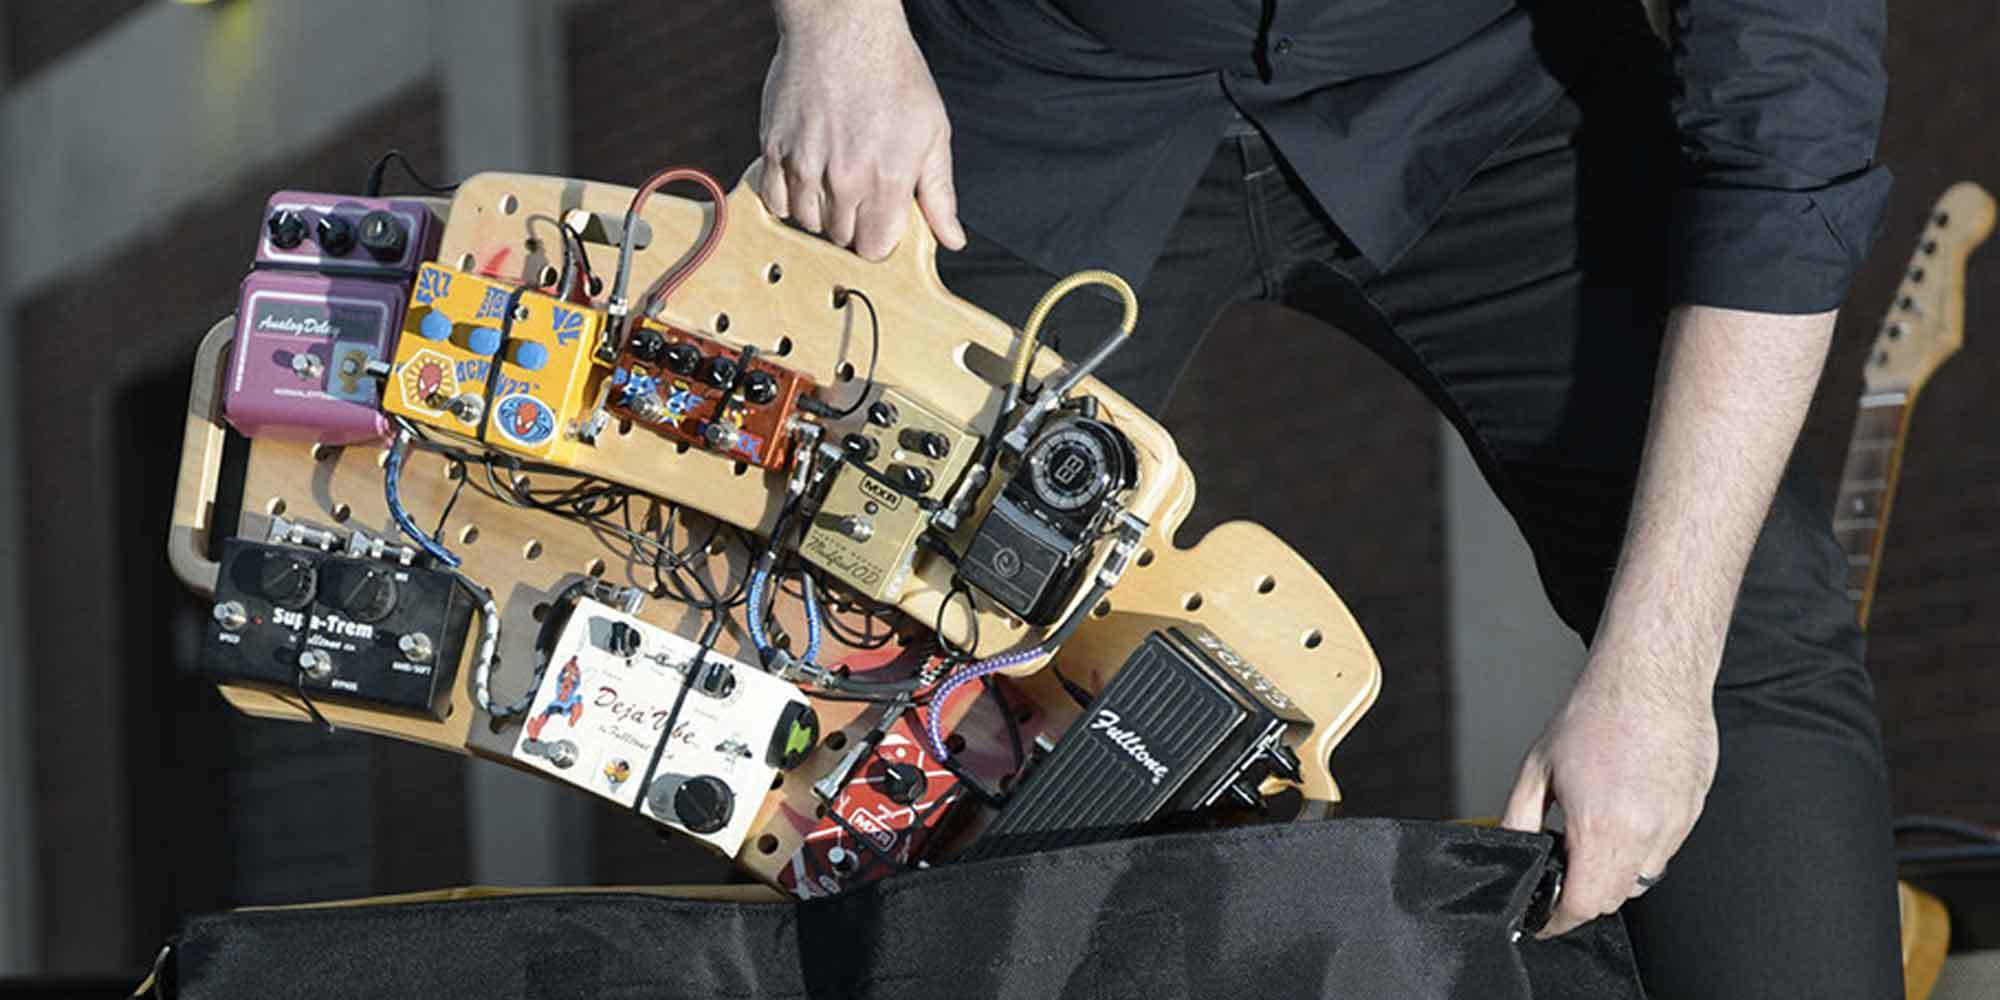 how to build a pyro board